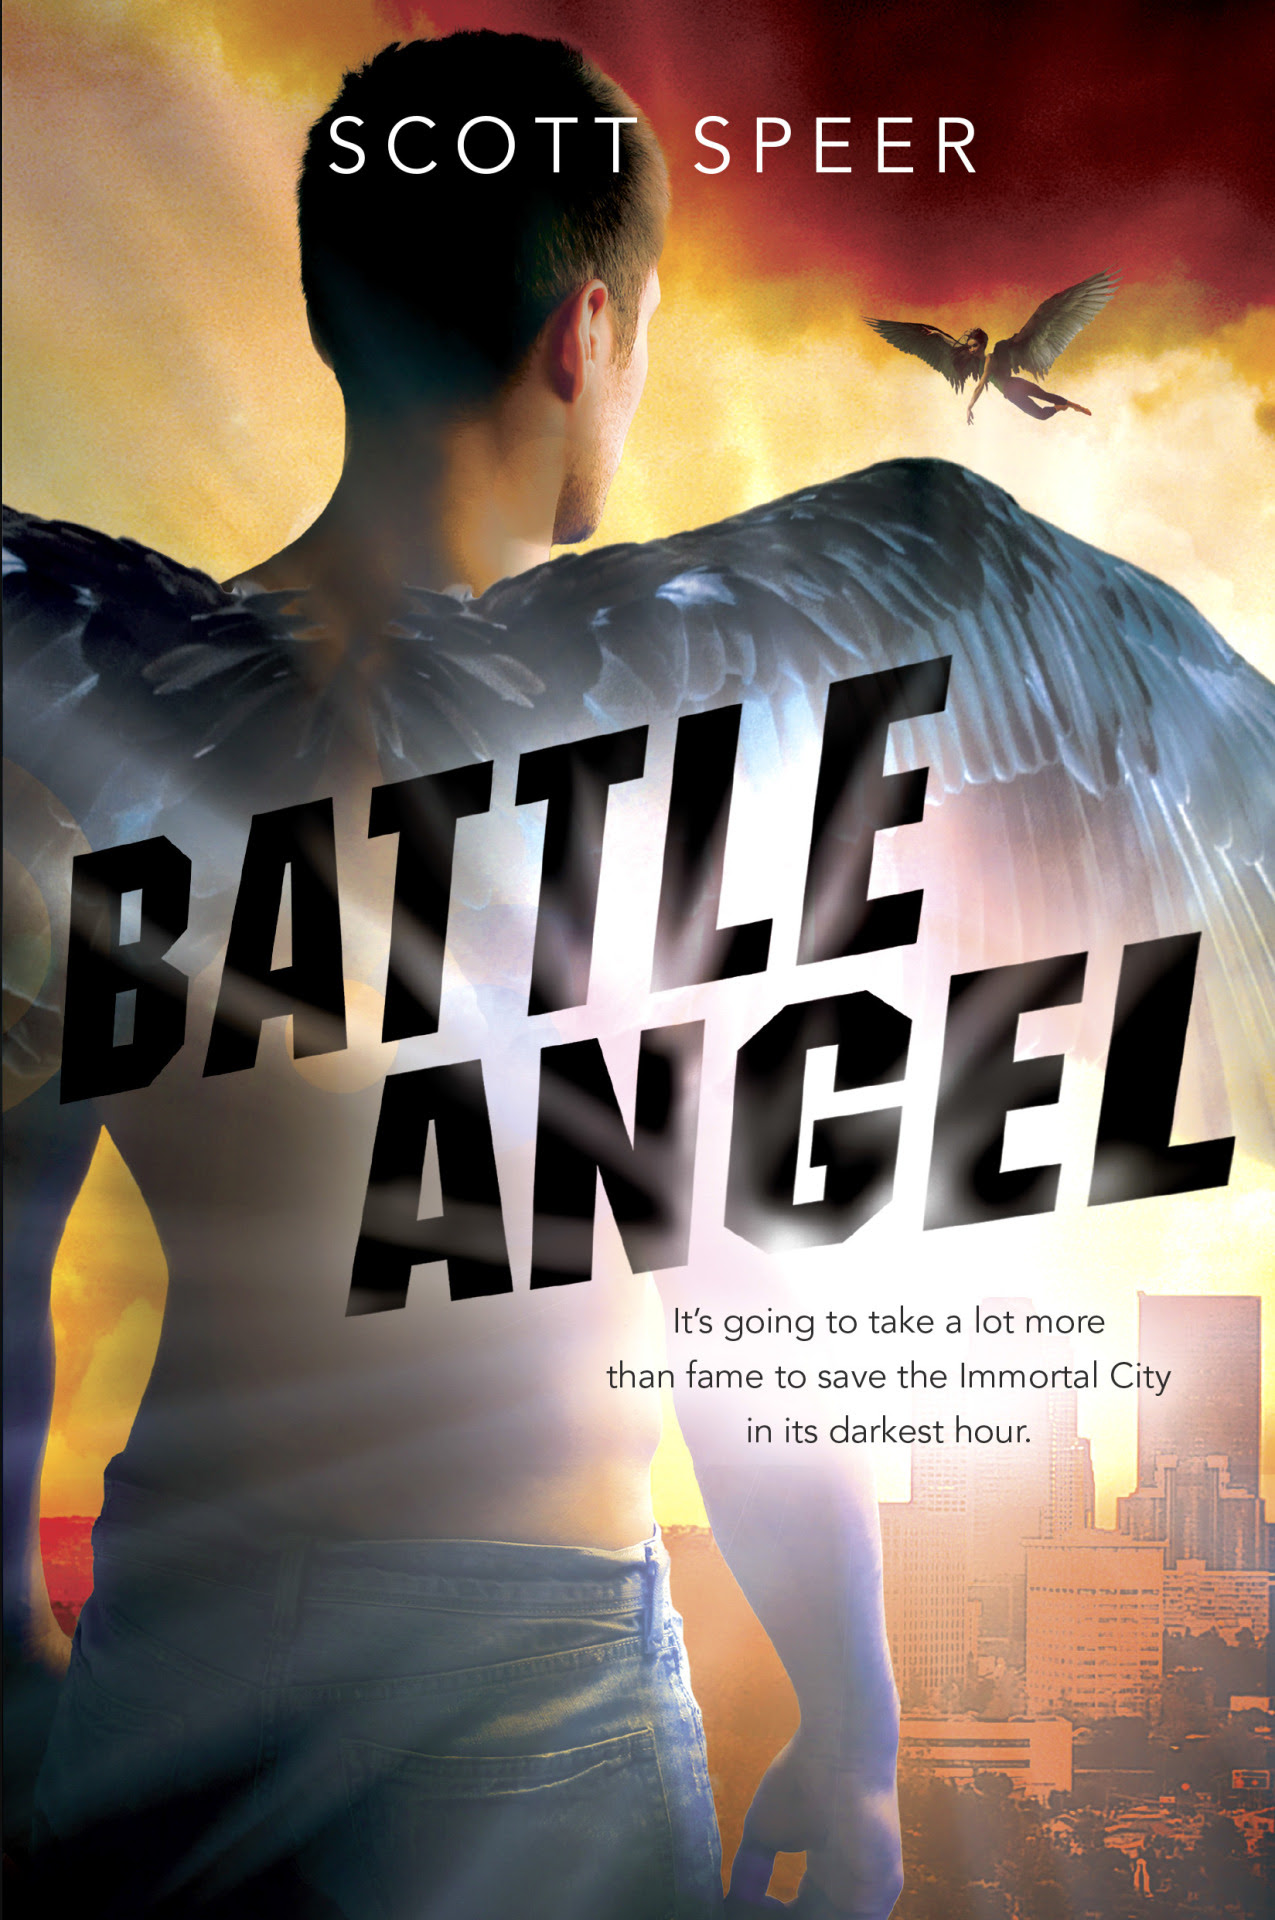 We are so excited to be bringing you the exclusive cover reveal of Scott Speer's Battle Angel today! Battle Angel is the third installment of the Immortal City series (which began with Immortal City and continued with Natural Born Angel). In Immortal City, we find a world in which angels are real, and not only that, they're celebrities. But what happens when a normal teenage girl falls in love with one of them? We were lucky enough to get to chat with the author, Scott Speer, who is no stranger to the inner workings of Hollywood and celebrity—he's a super talented music video and film director whose new TV series, Finding Carter, was just picked up by MTV! Can you give us the scoop on what the Immortal City series is about? The Immortal City series takes place in an alternate Los Angeles called Angel City, where Guardian Angels are celebrities who save humans for money. They are wildly famous and rich, living in mansions and driving Lamborghinis, and are idolized by throngs of devoted fans. The series is told through the eyes of Maddy Montgomery, a senior at Angel City High and the only girl in the city who doesn't seem to care about the Immortals or their lifestyle. When, one night, she accidentally runs into Jackson Godspeed, the most famous Guardian Angel, a journey of romance, hidden destinies, and deadly consequences begins. What can we expect from BATTLE ANGEL? Battle Angel is the third—and final—book in the series. It finds Maddy and the Angels facing an army of demons rising from below the Pacific Ocean to overtake Angel City—and eventually the world. Meanwhile, Maddy's complicated relationship with Jacks is put to the ultimate test when Tom, the human who comes into Maddy's life in Natural Born Angel (Book 2), proposes to her. Alliances will be broken, promises will be made, and Maddy will ultimately be forced to choose between Angels and humans, between Jacks and Tom, and between life and death.   What do you think of the covers for the series? Do they do a good job of representing the books? My favorite covers are the book 1 and 2 hardcover editions, as they are images of Jacks and Maddy, respectively. What I like about the Book 3 cover is we get a little more scope in the image, and we get to see Angel City itself. In a similar way, the third book expands the horizons of the series to include epic action, pitched battles, and ultimate life-and-death choices for all of the principal characters. I really wanted to write a book that felt like some of my favorite action movies—Transformers or Braveheart or Lord of the Rings: Two Towers. Who's your favorite character in the Immortal City series?   The answer is as easy as it is unoriginal—Maddy. Maddy's character really grew out of my own experiences and observations living and working in Los Angeles, and many of her experiences throughout the series are taken directly from my own. I do also have a soft spot for Detective Sylvester, a man who holds himself to the thankless standard of doing the right thing, even and especially when no one is looking. What are you working on now? I'm writing a new book that I'm very excited about; meanwhile directing in LA keeps me busy and slightly manic. My first TV series, Finding Carter, premieres on MTV this summer, while my next movie, Spinback, is currently casting at Lionsgate.    Battle Angel will be released on August 28, 2014! Meanwhile you can pick up the first two books in the series, Immortal City and Natural Born Angel. And don't forget to check out the AMAZING cinematic trailer Scott made for Immortal City.